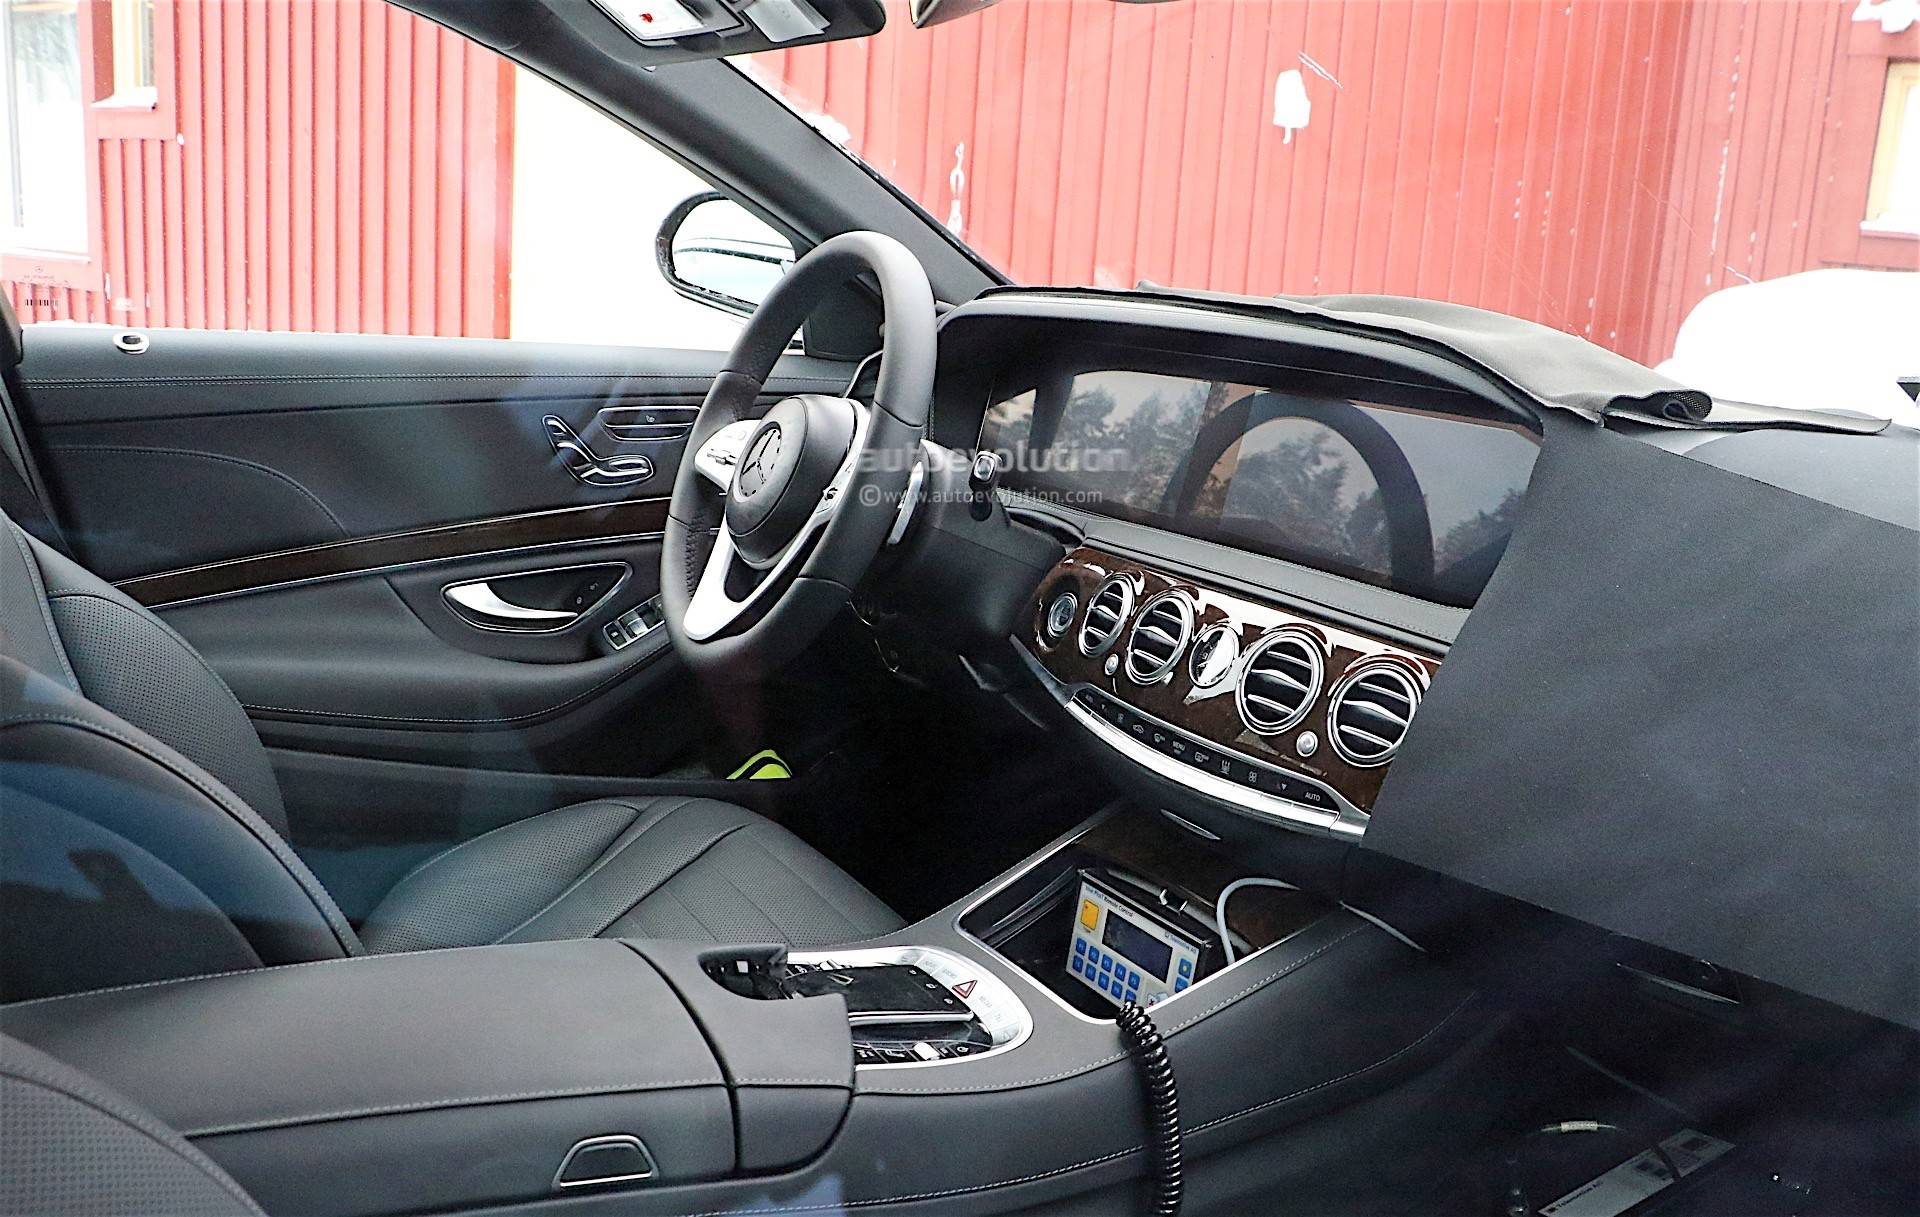 2018 mercedes benz s class facelift spyshots reveal new. Black Bedroom Furniture Sets. Home Design Ideas